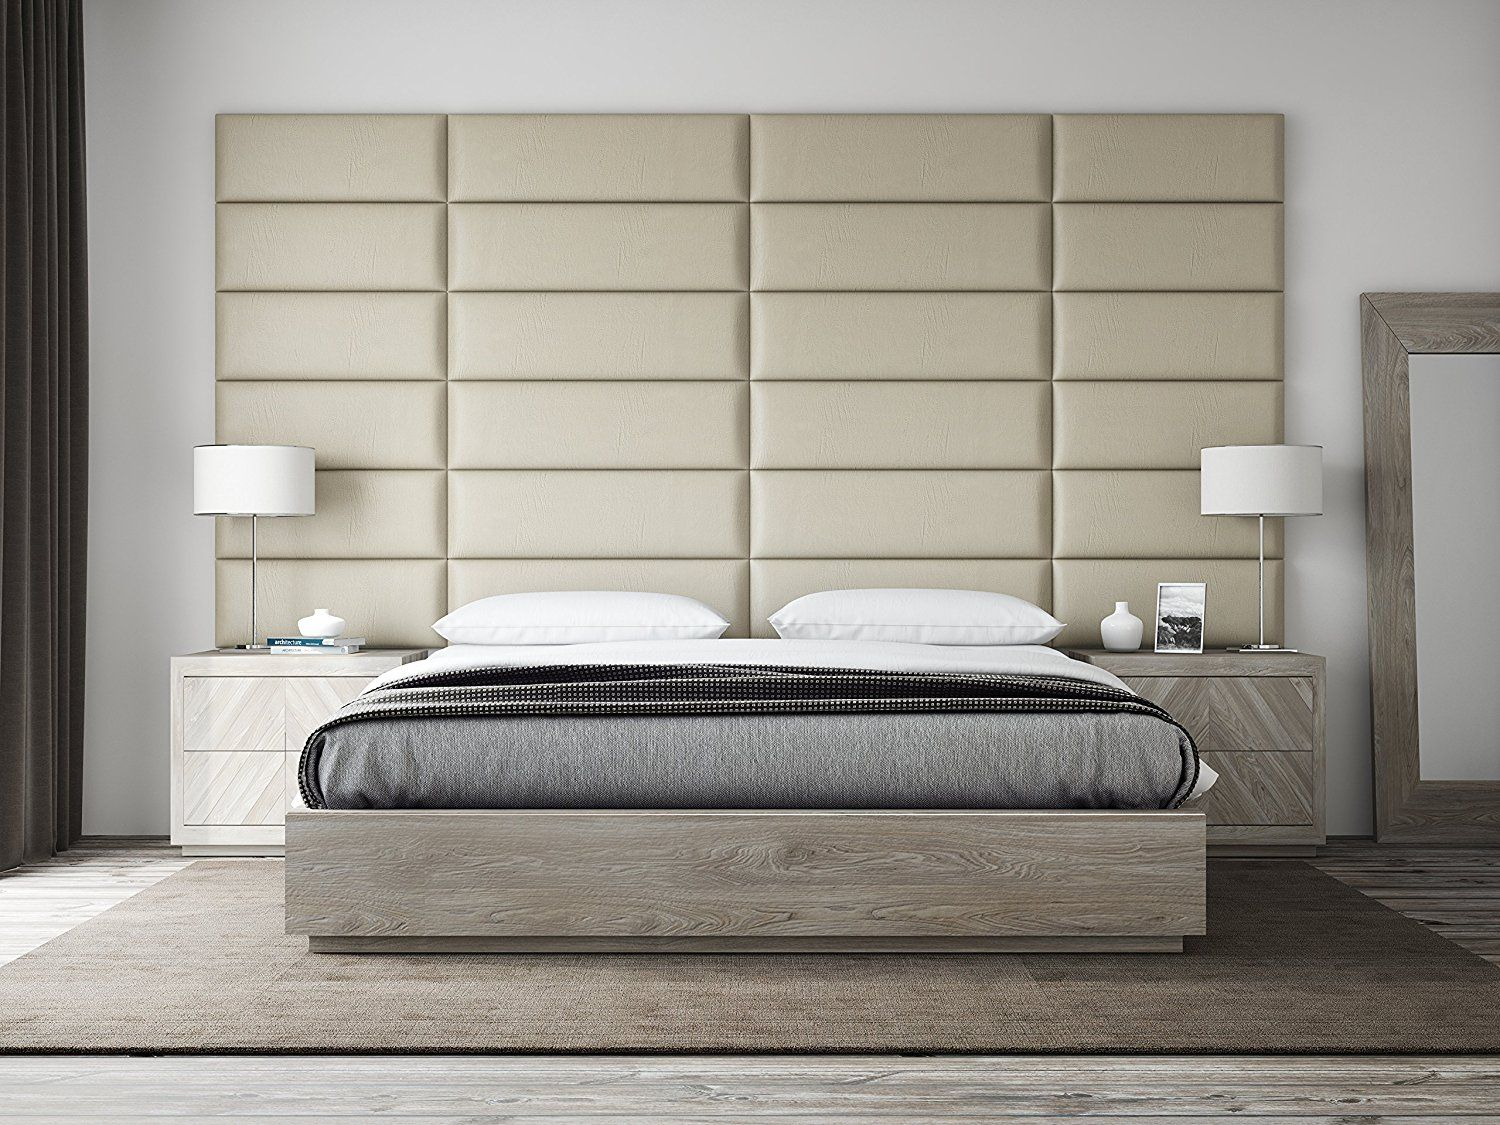 Add Character To Your Bedroom With A Custom Made Headboard Or Padded Wall Panels Like This One Upholstered Walls Upholstered Headboard Upholstered Wall Panels